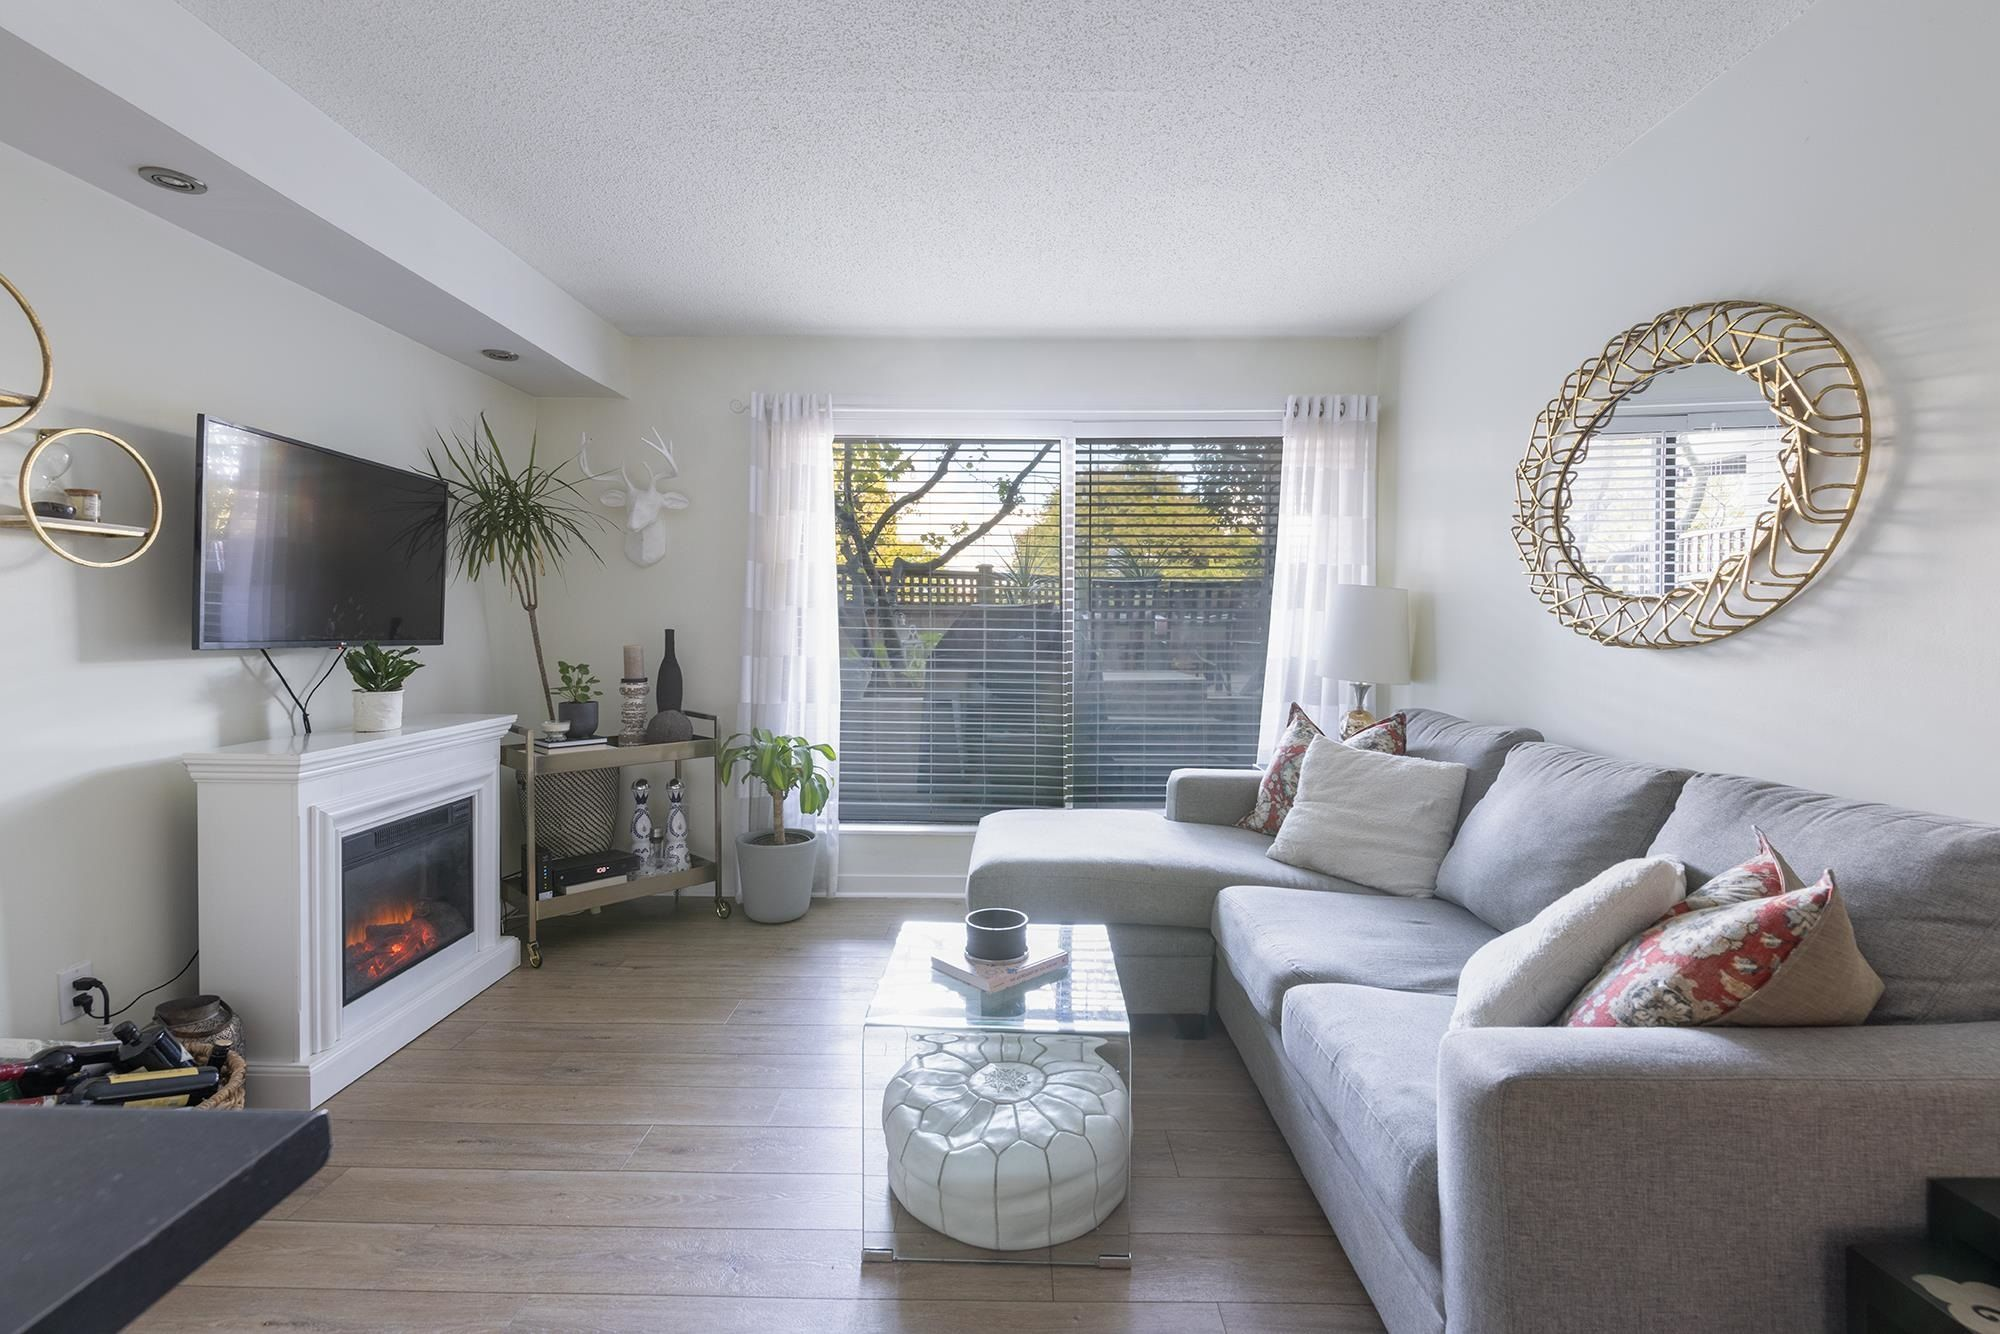 """Main Photo: 101 1990 W 6TH Avenue in Vancouver: Kitsilano Condo for sale in """"Mapleview Place"""" (Vancouver West)  : MLS®# R2625345"""